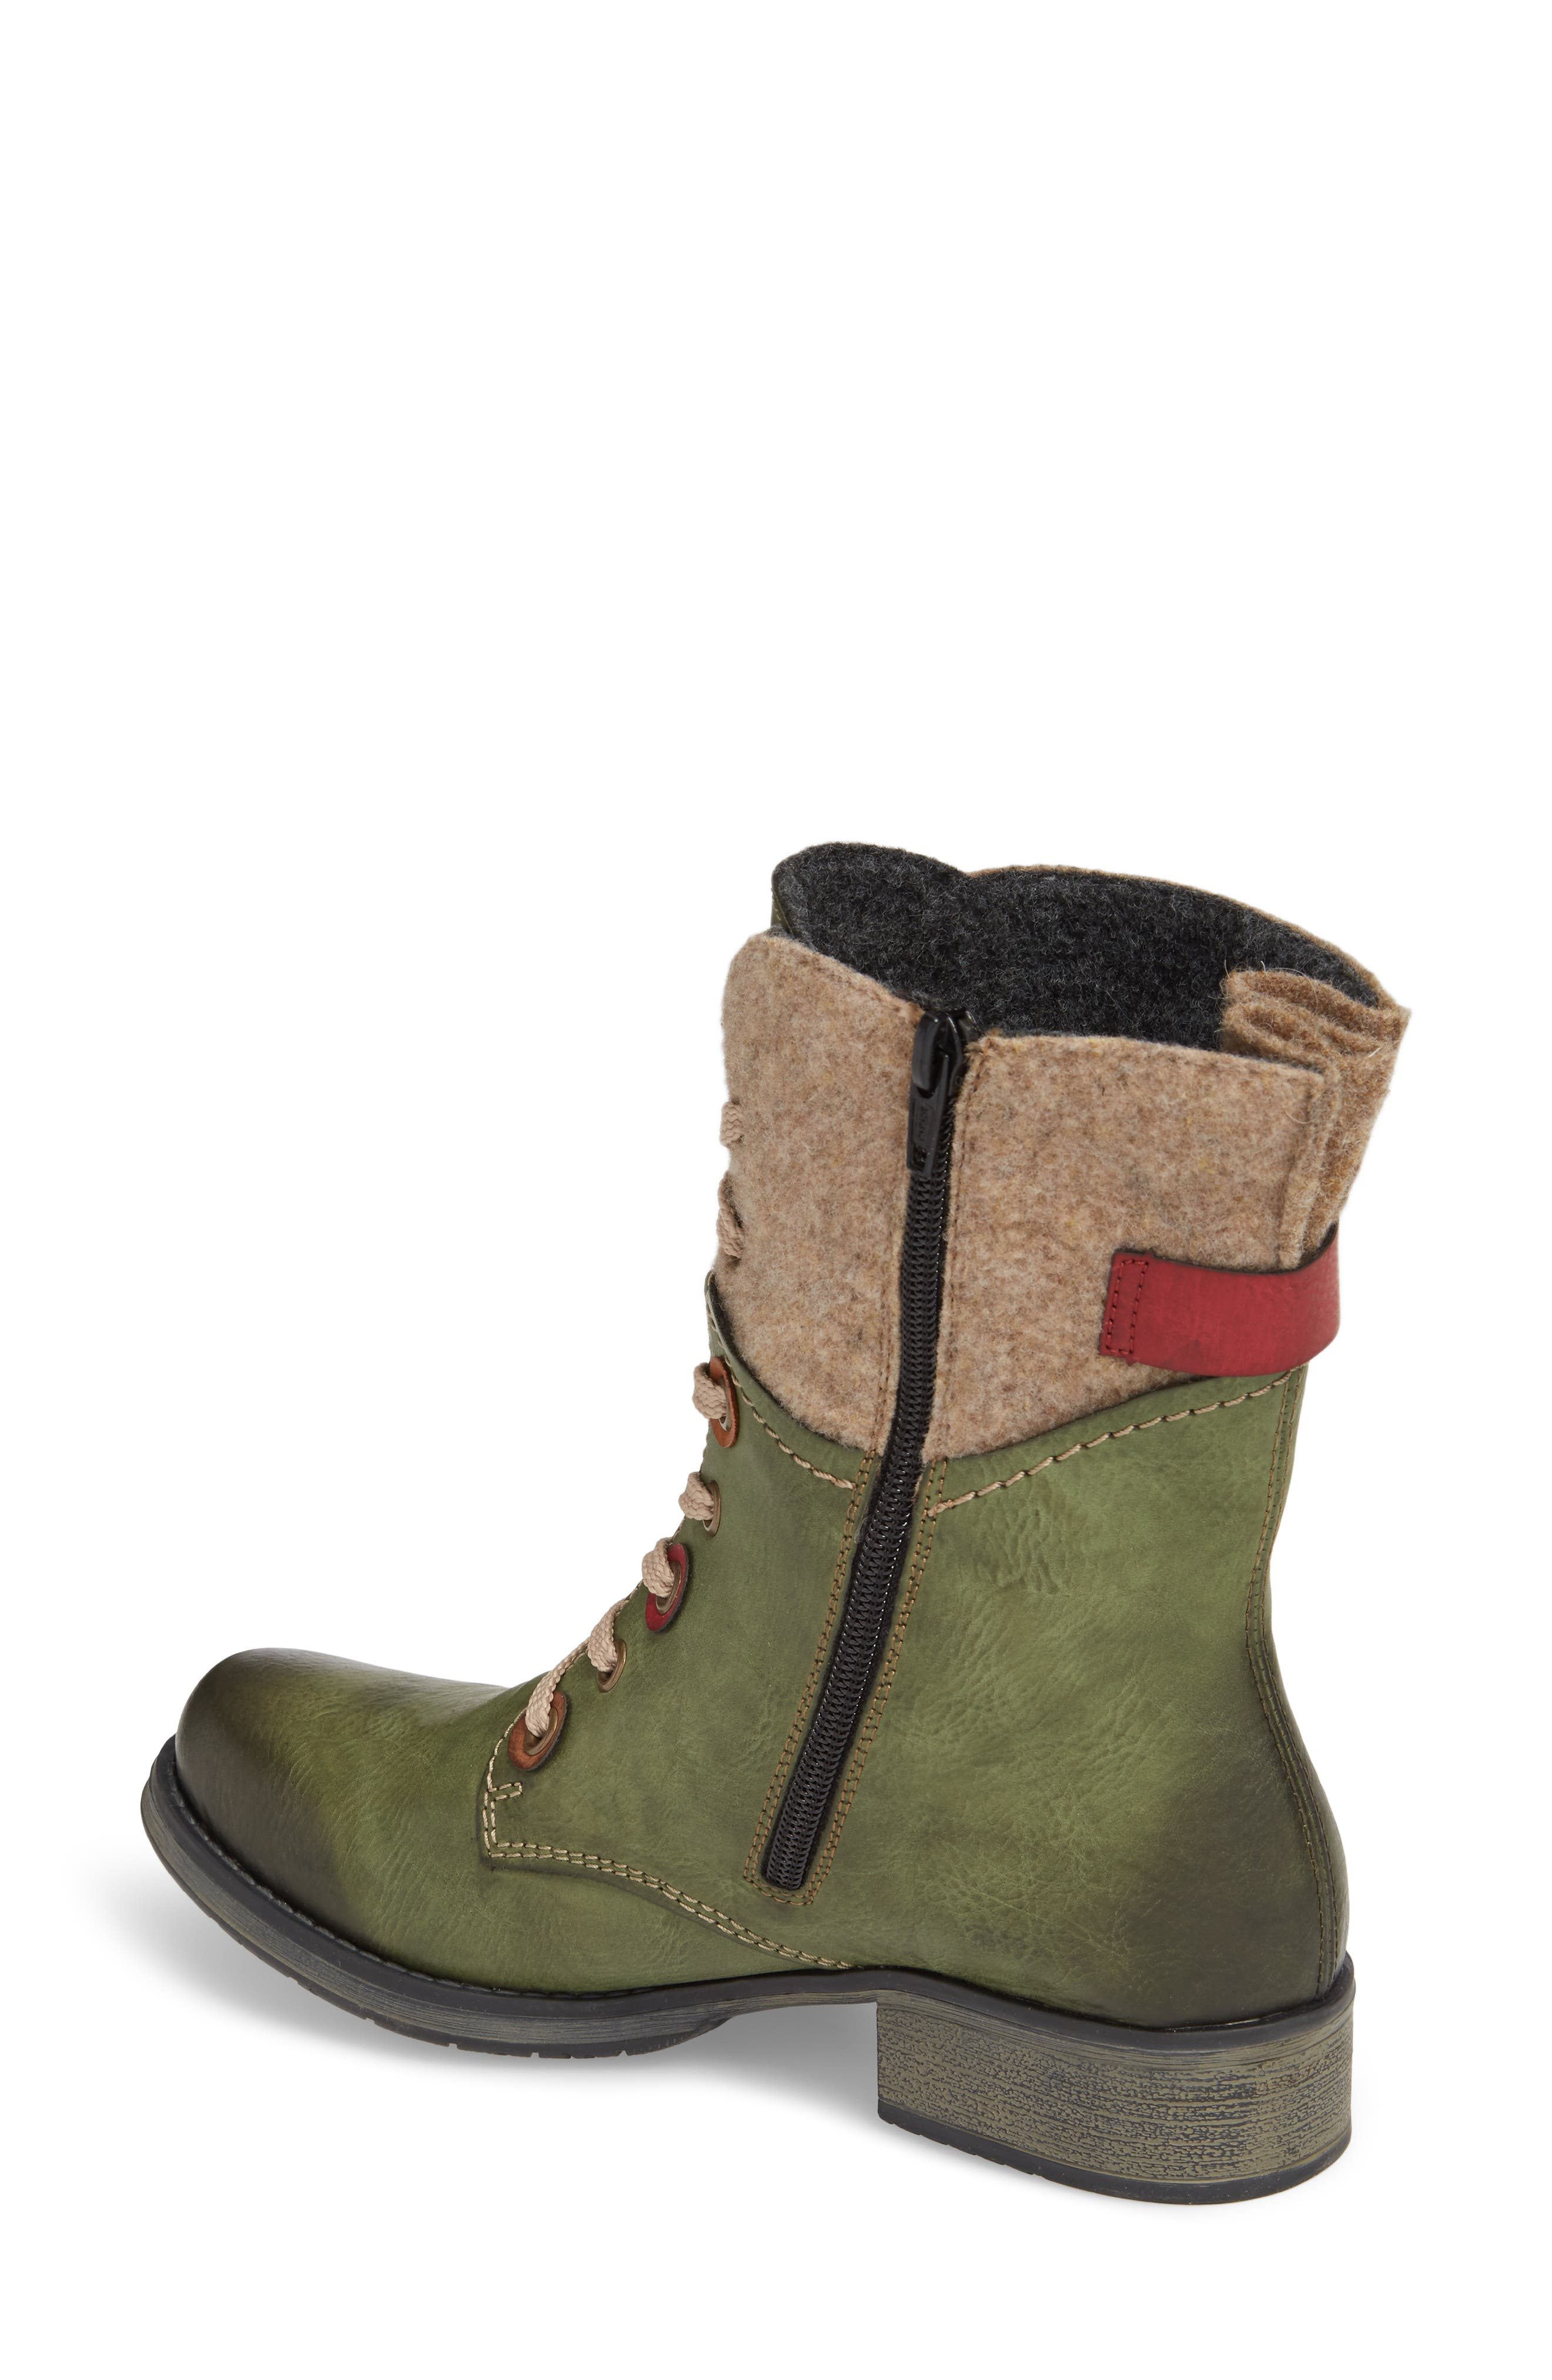 Fergie 43 Lace-Up Boot,                             Alternate thumbnail 2, color,